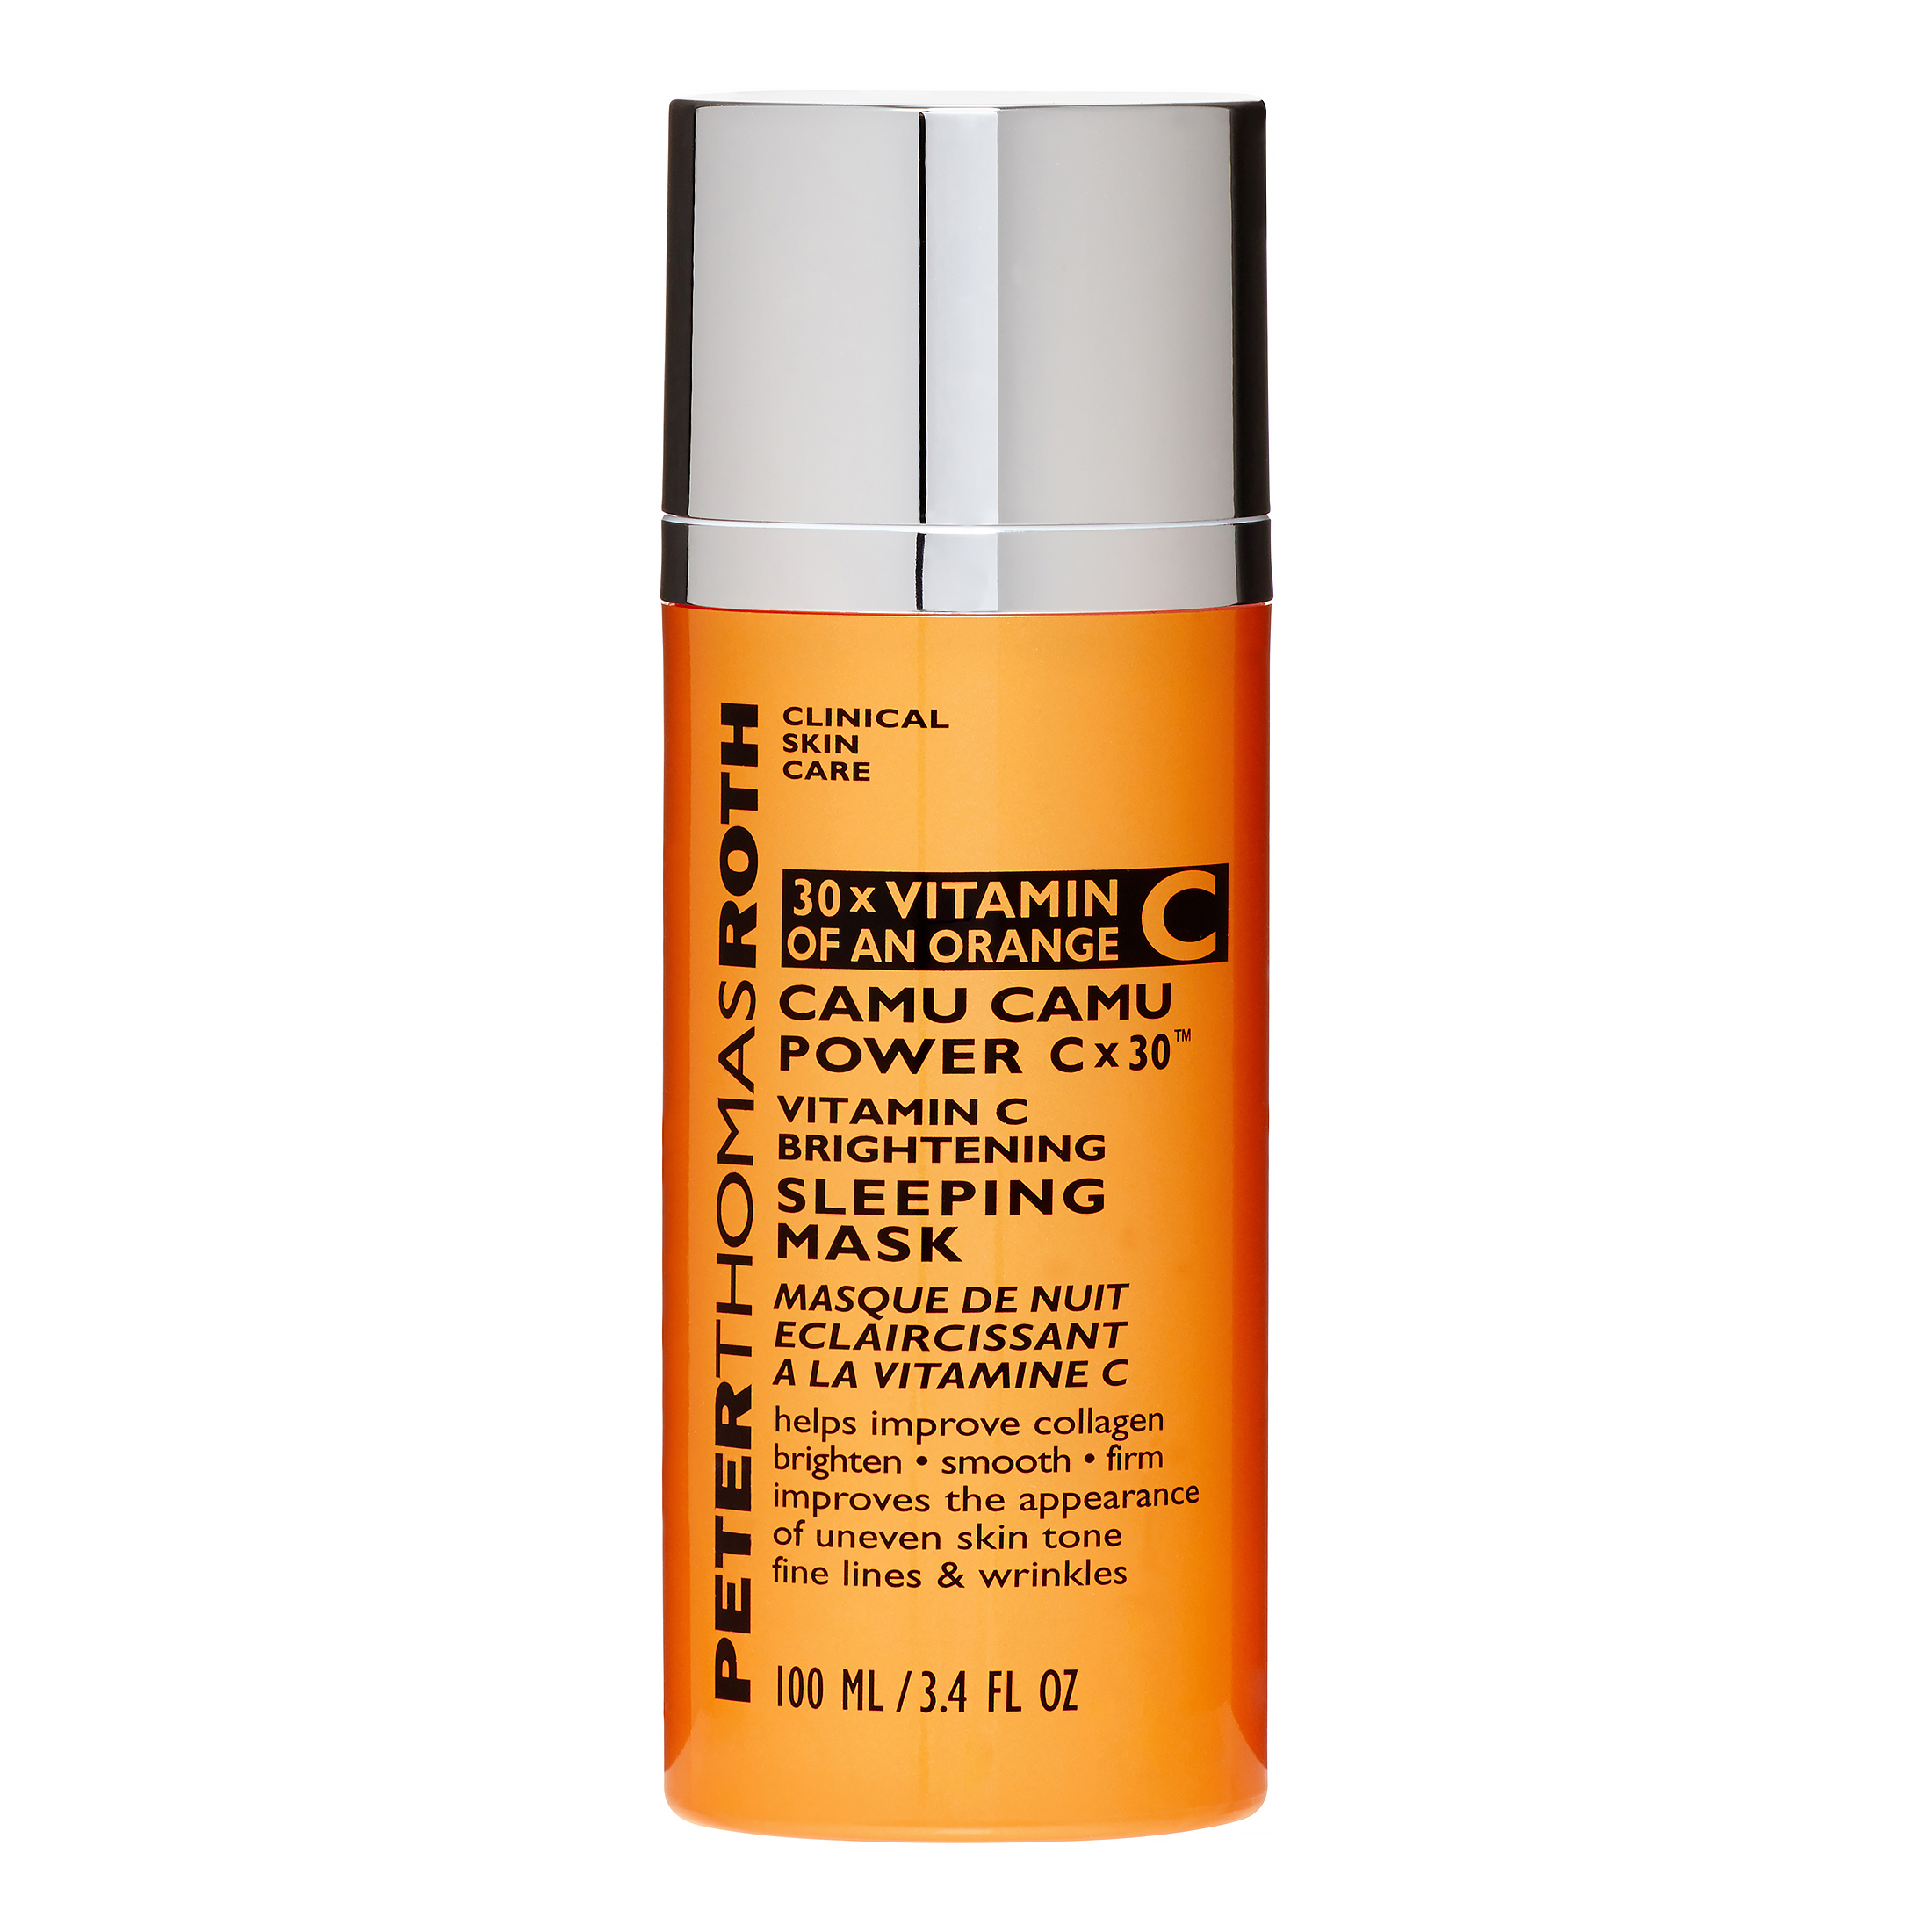 Peter Thomas Roth Camu Camu Power Sleeping Mask, 3.4 Oz